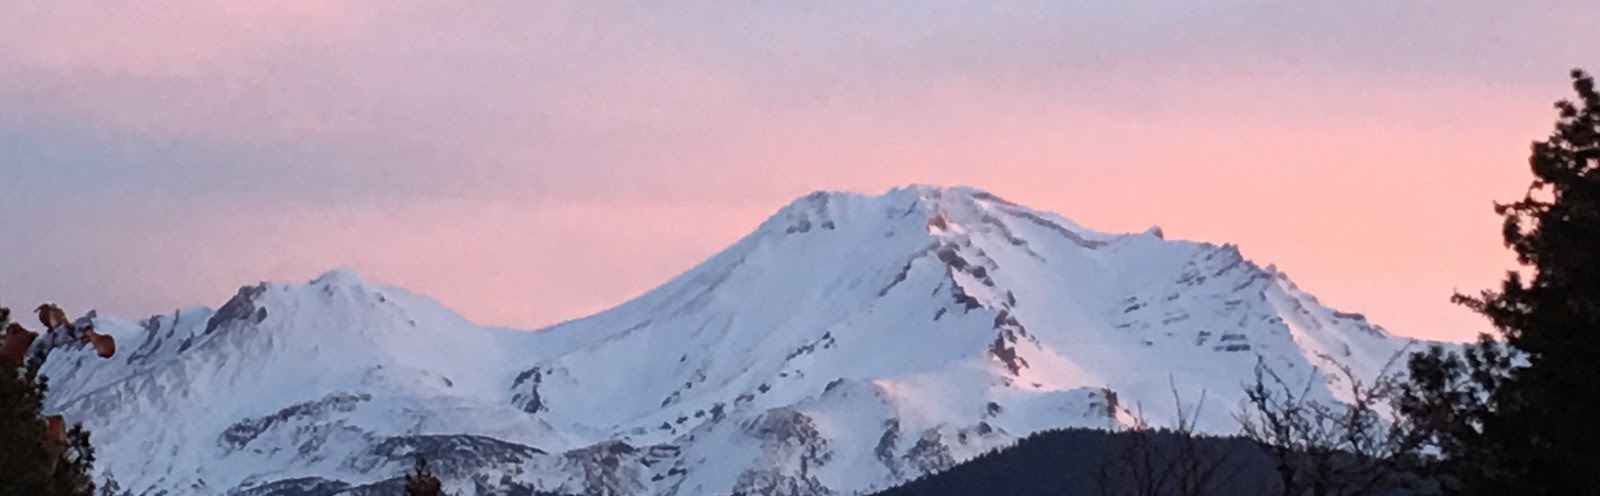 Sunset on Mt Shasta during a client retreat